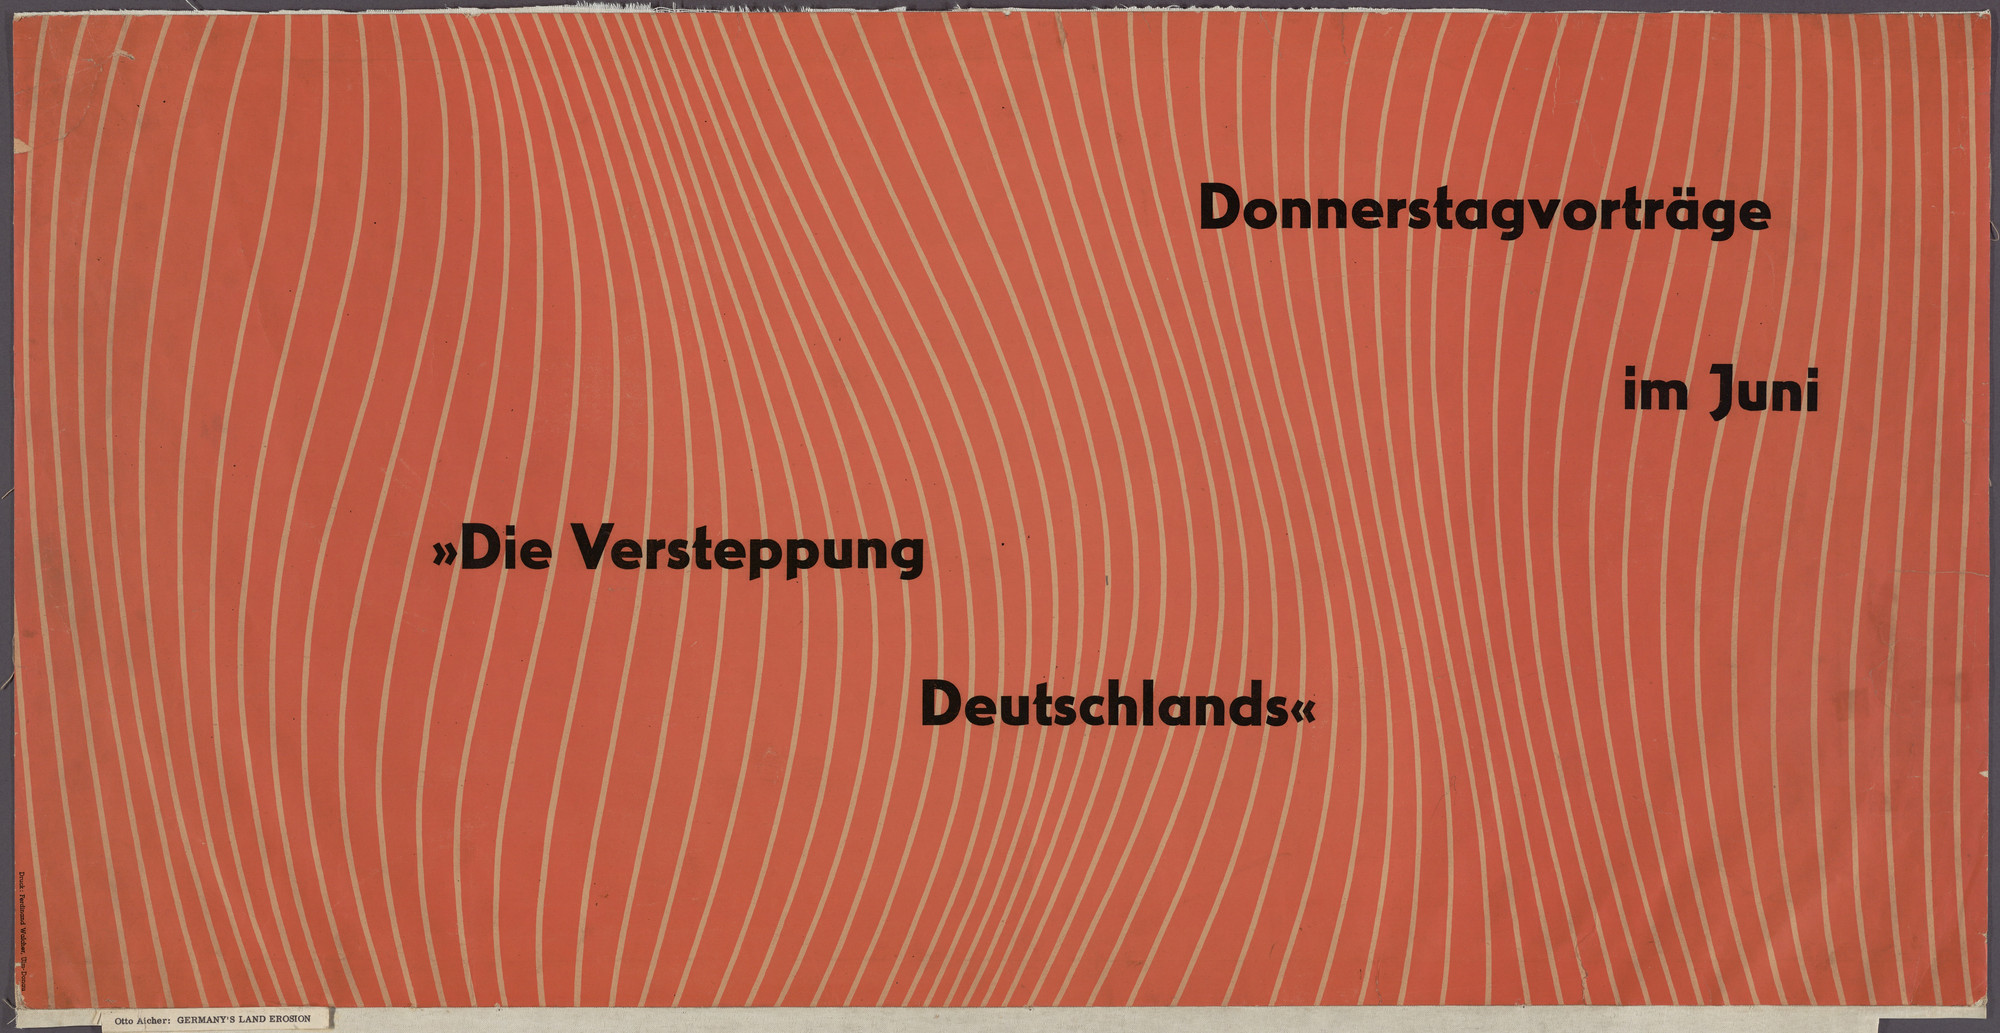 Otl Aicher (also known as Otto Aicher). Donnerstag Verträge in Juni. 1950